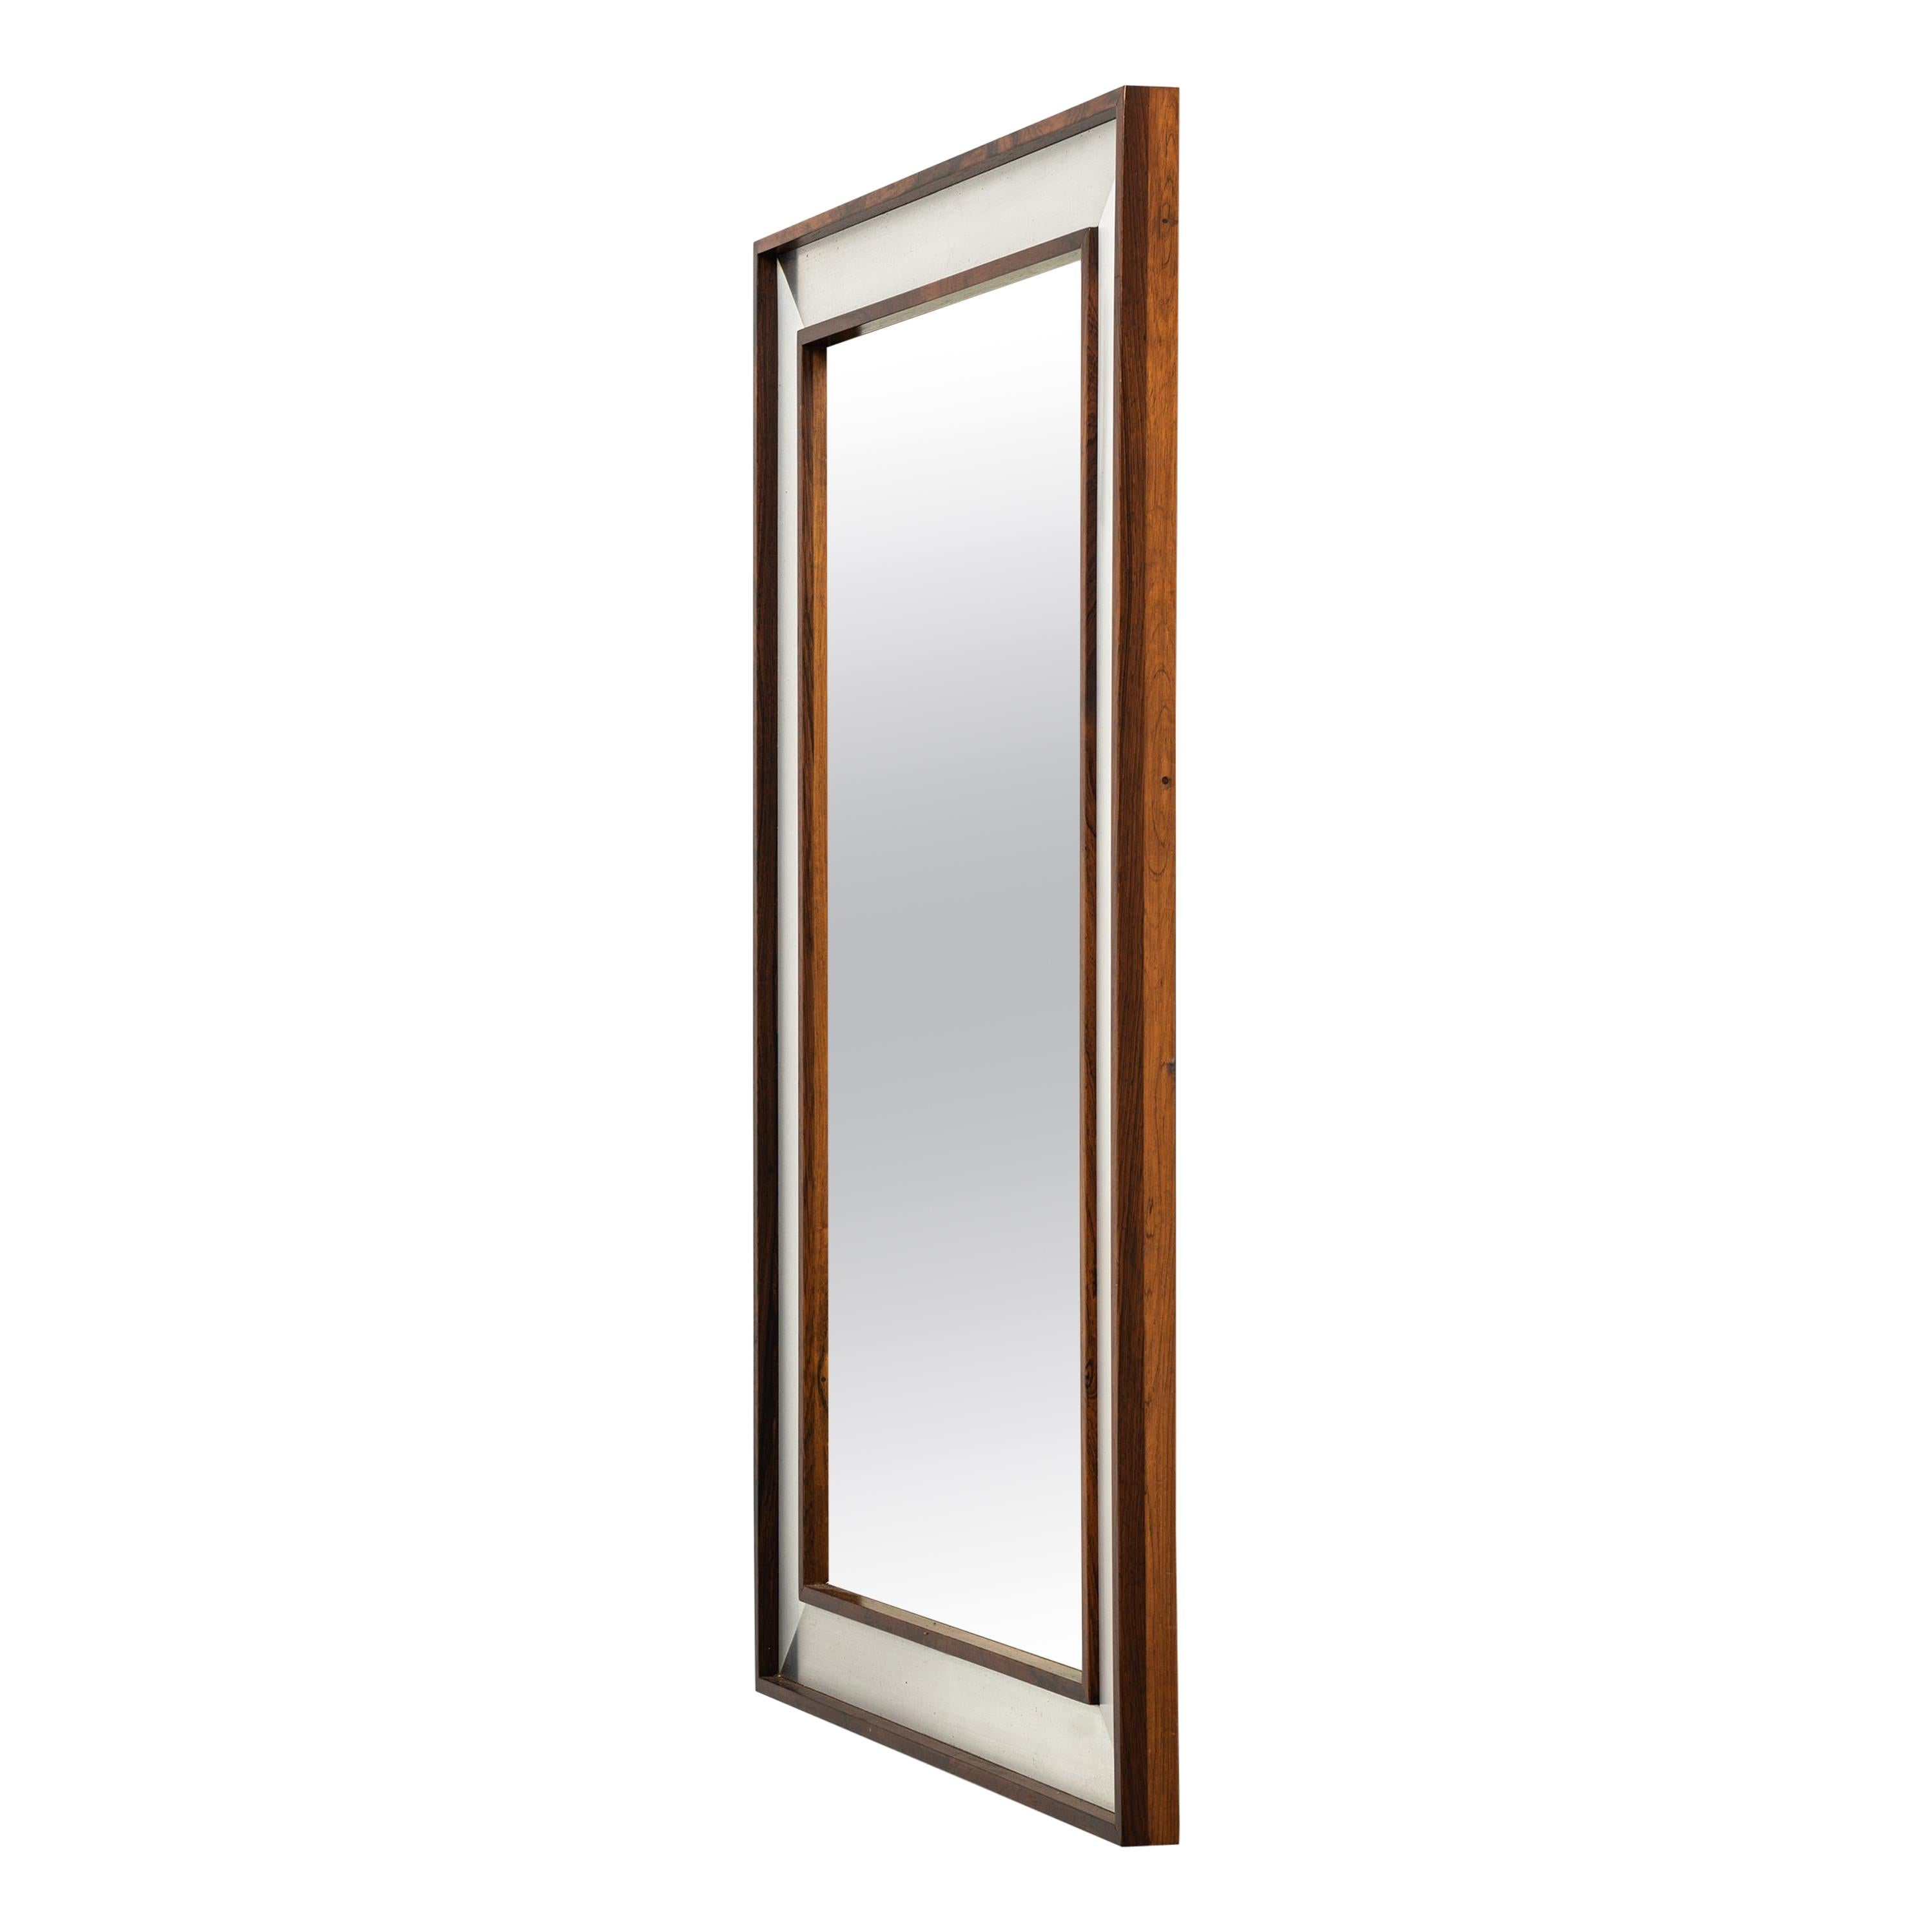 Large Rosewood Mirror with Aluminium Frame Produced by Fröseke in Sweden